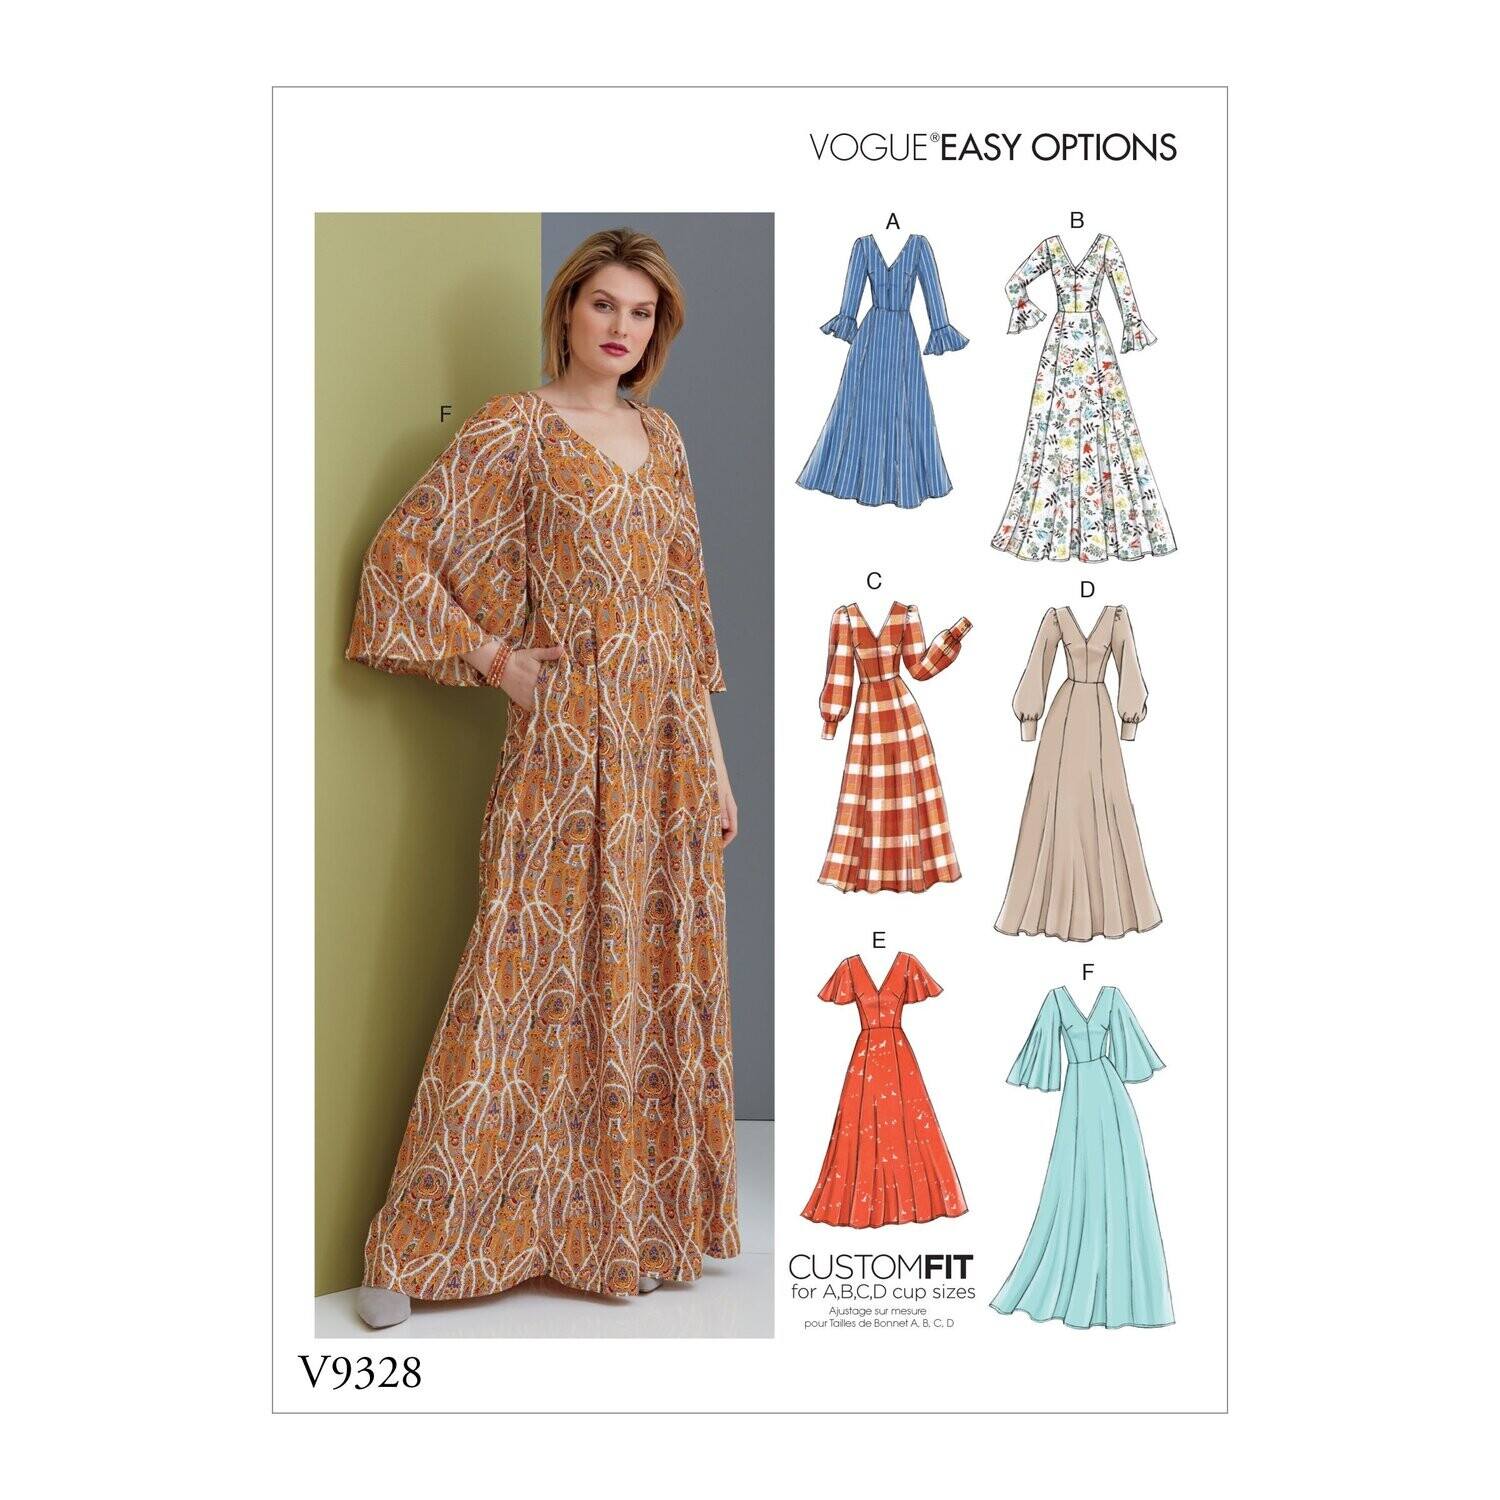 Vogue Easy Options Sewing Pattern V9328 A5 6-14